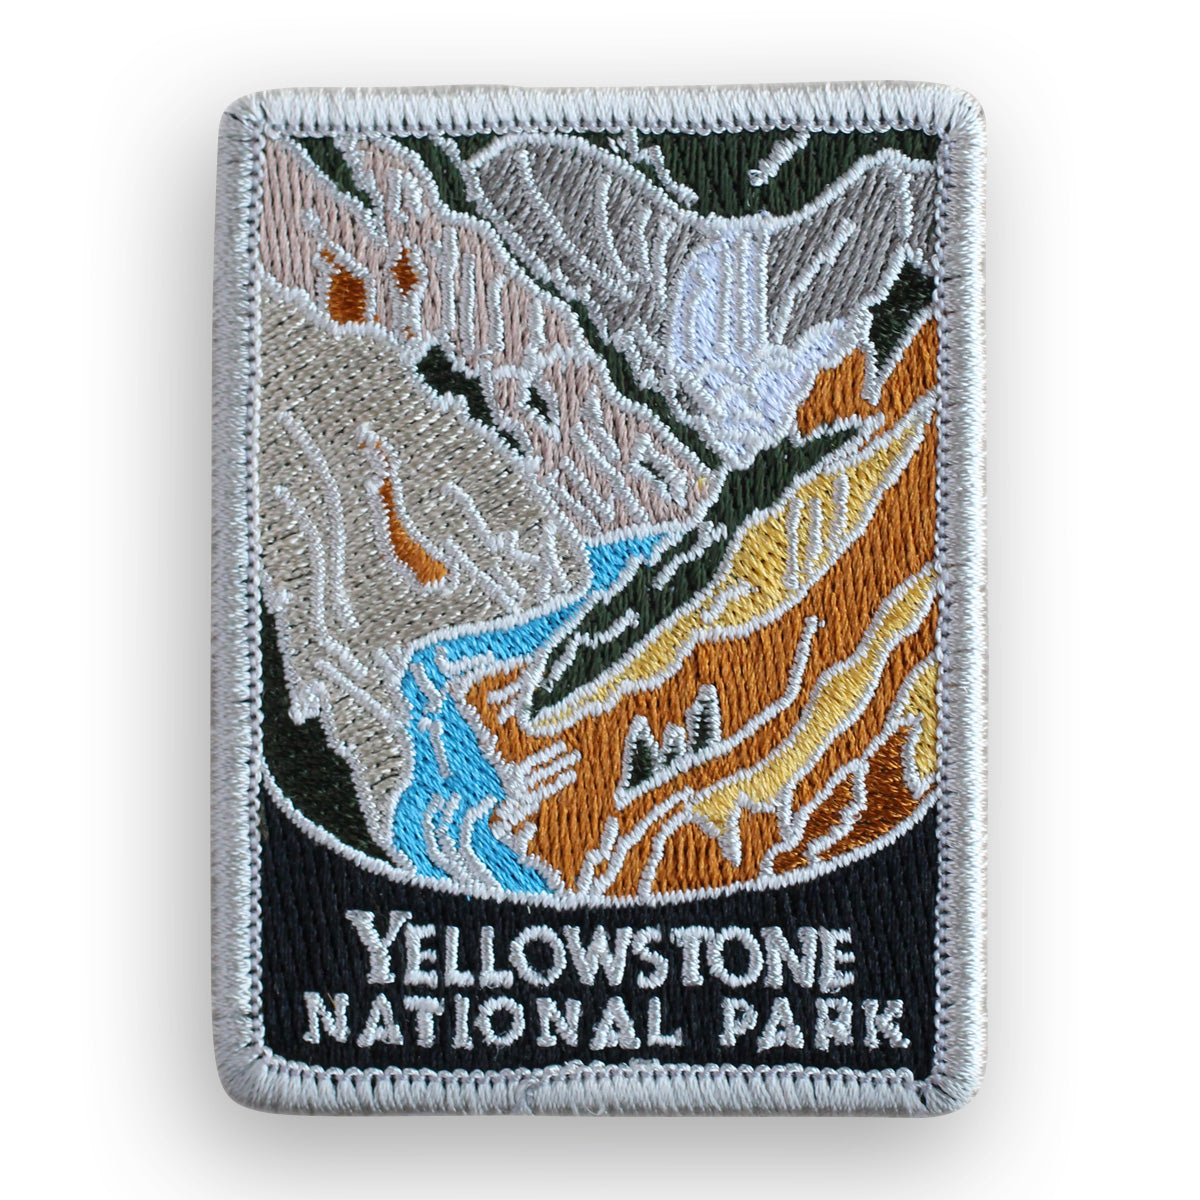 Yellowstone National Park Traveler Patch